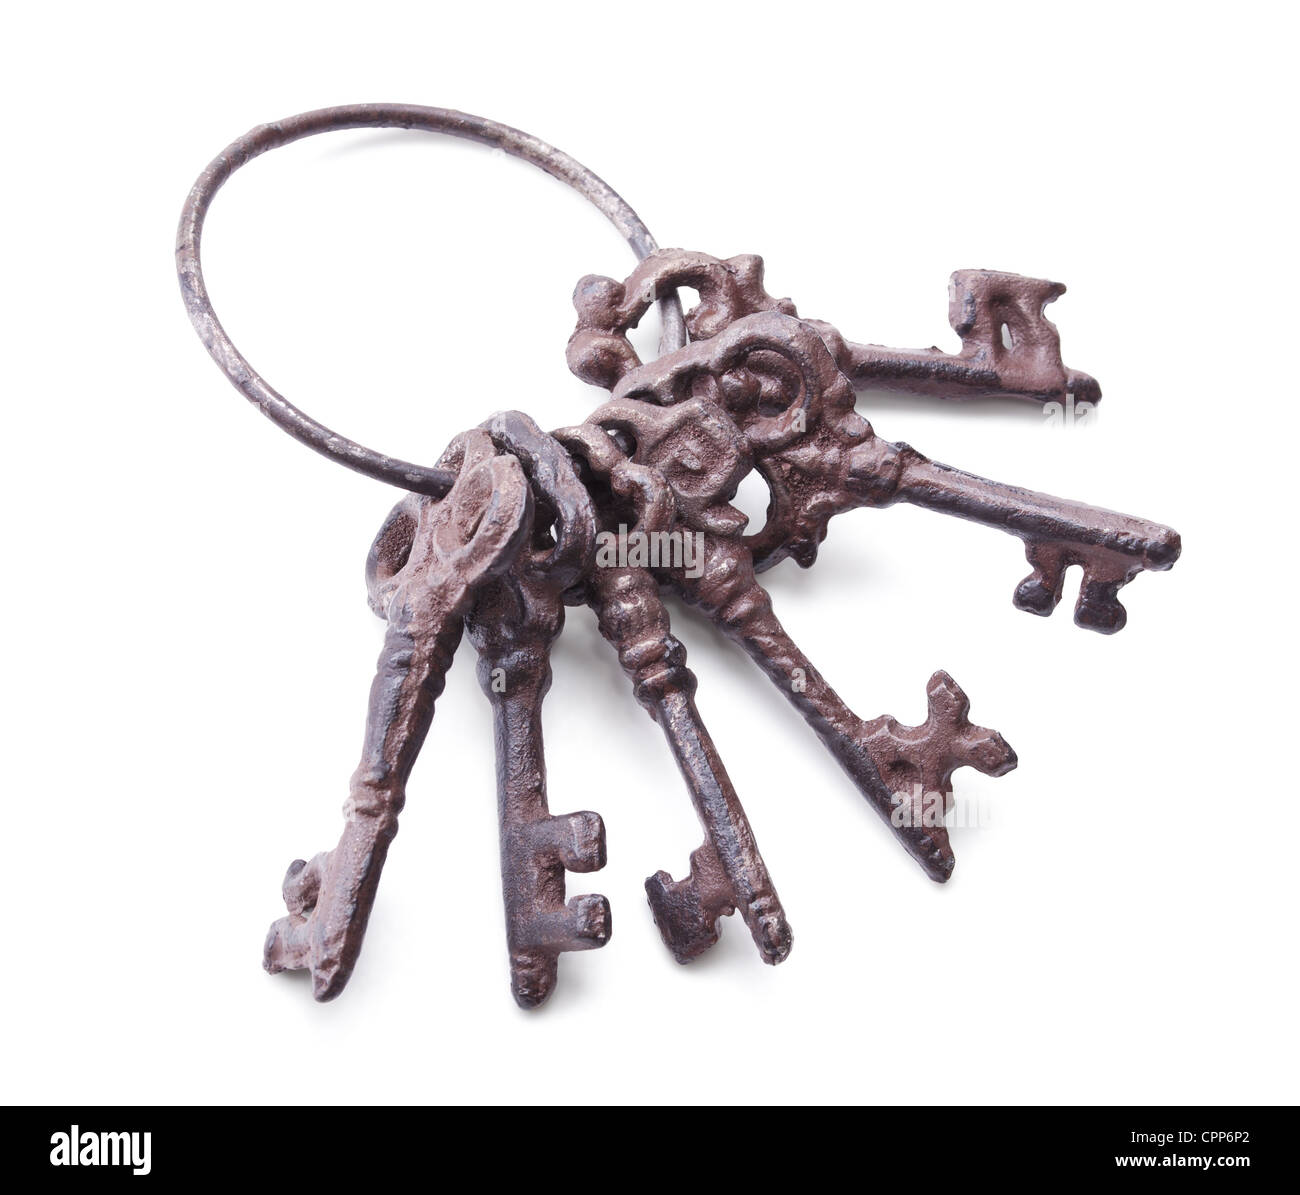 bunch of antique keys isolated on white background Stock Photo